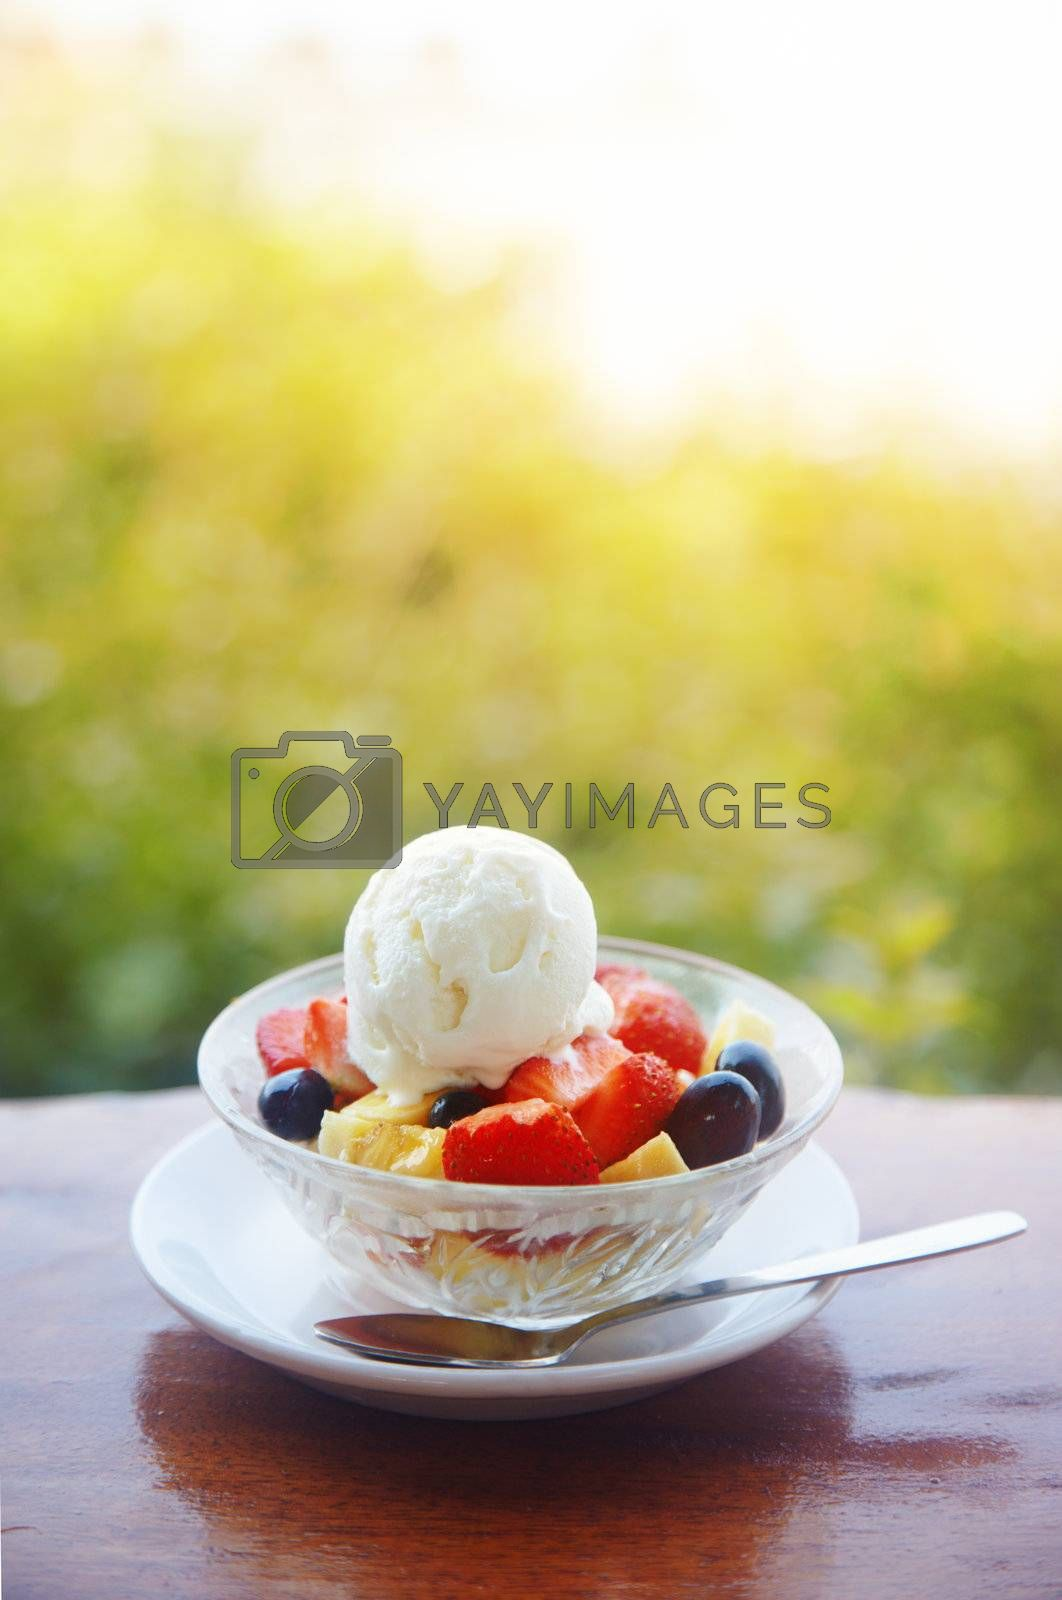 Fruit salad with ice cream on the table outdoors. Vertical photo with shallow depth of field for natural view. Vibrant colors